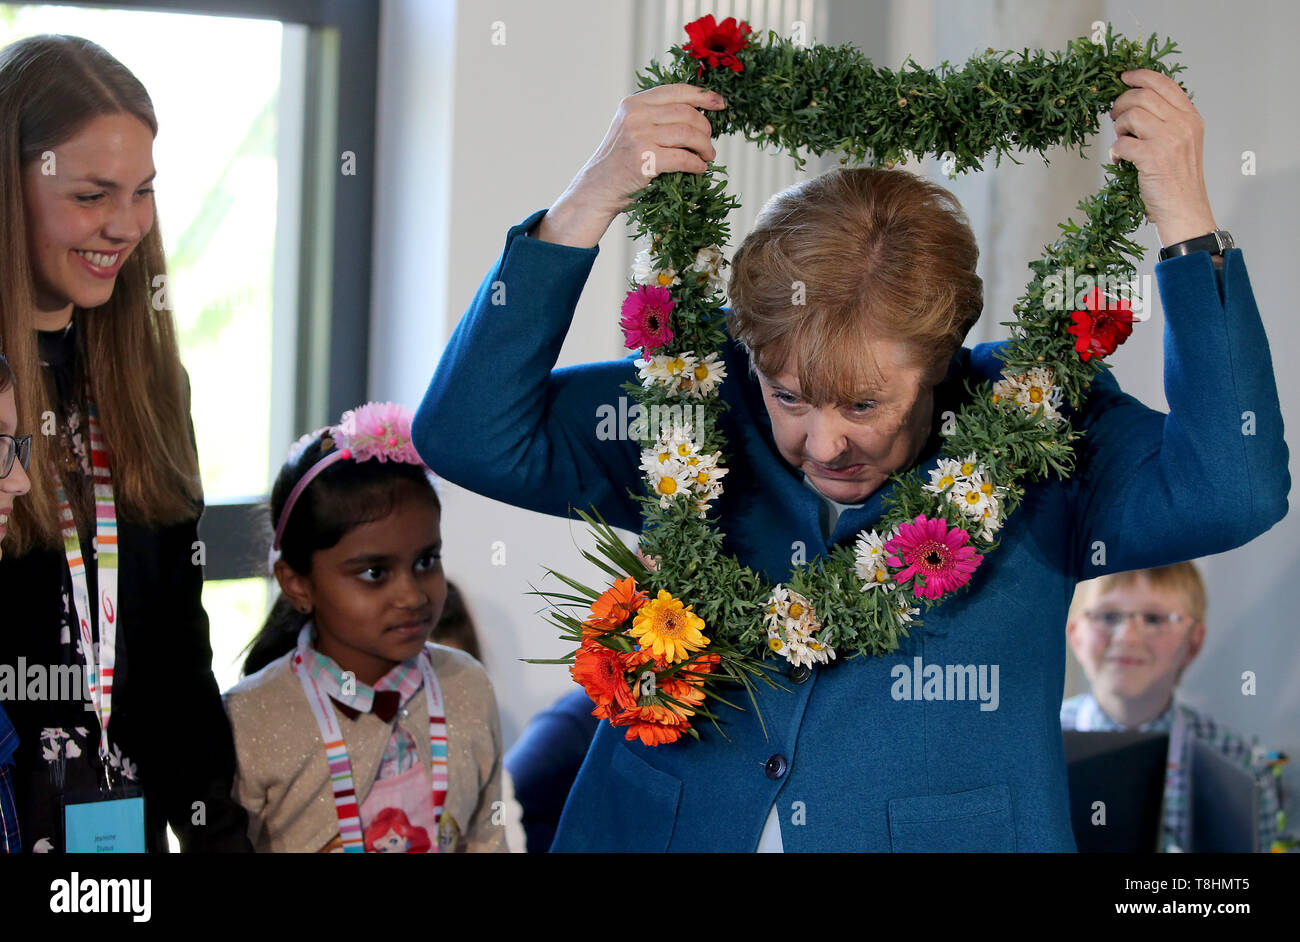 Wuppertal, Germany. 09th May, 2019. Federal Chancellor Angela Merkel (r, CDU) receives a wreath of flowers from the Sri Lankan student Sadurthika Mahenthdran (M) at the Junior University. The Wuppertal Junior University is a nationwide unique extracurricular educational and research institution for 4 to 20 year olds. Credit: Oliver Berg/dpa/Alamy Live News - Stock Image